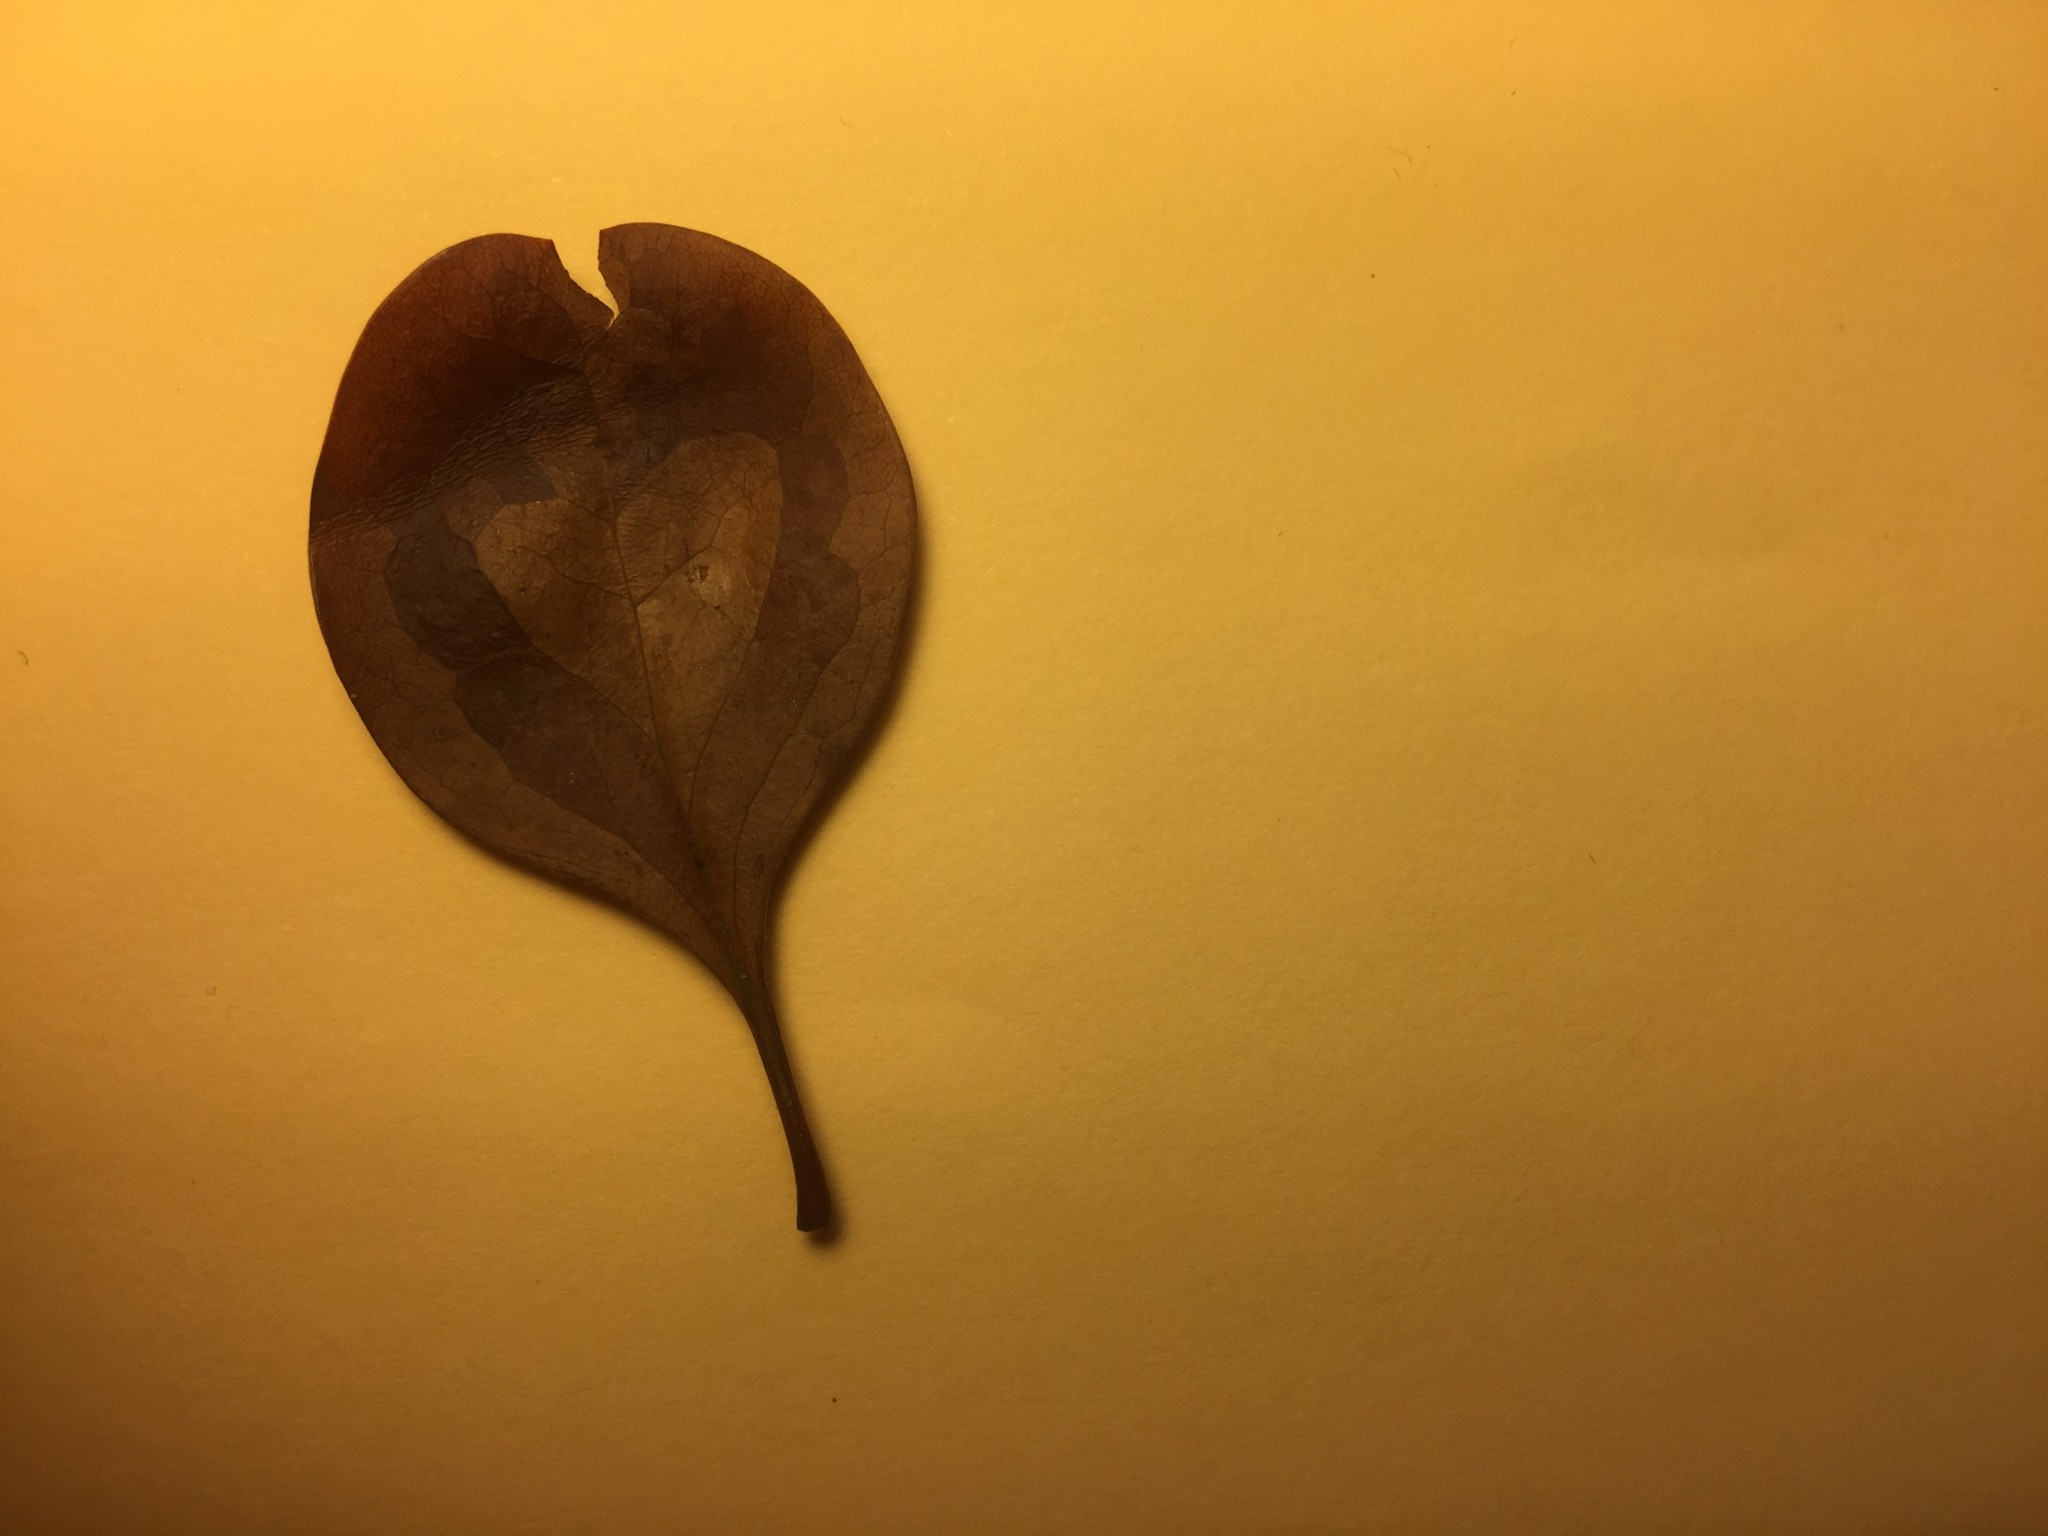 Boy Three gave me a leaf with a heart on it. It's beautiful, but you'll have to take my word for it as I've failed to take a good photo of it.